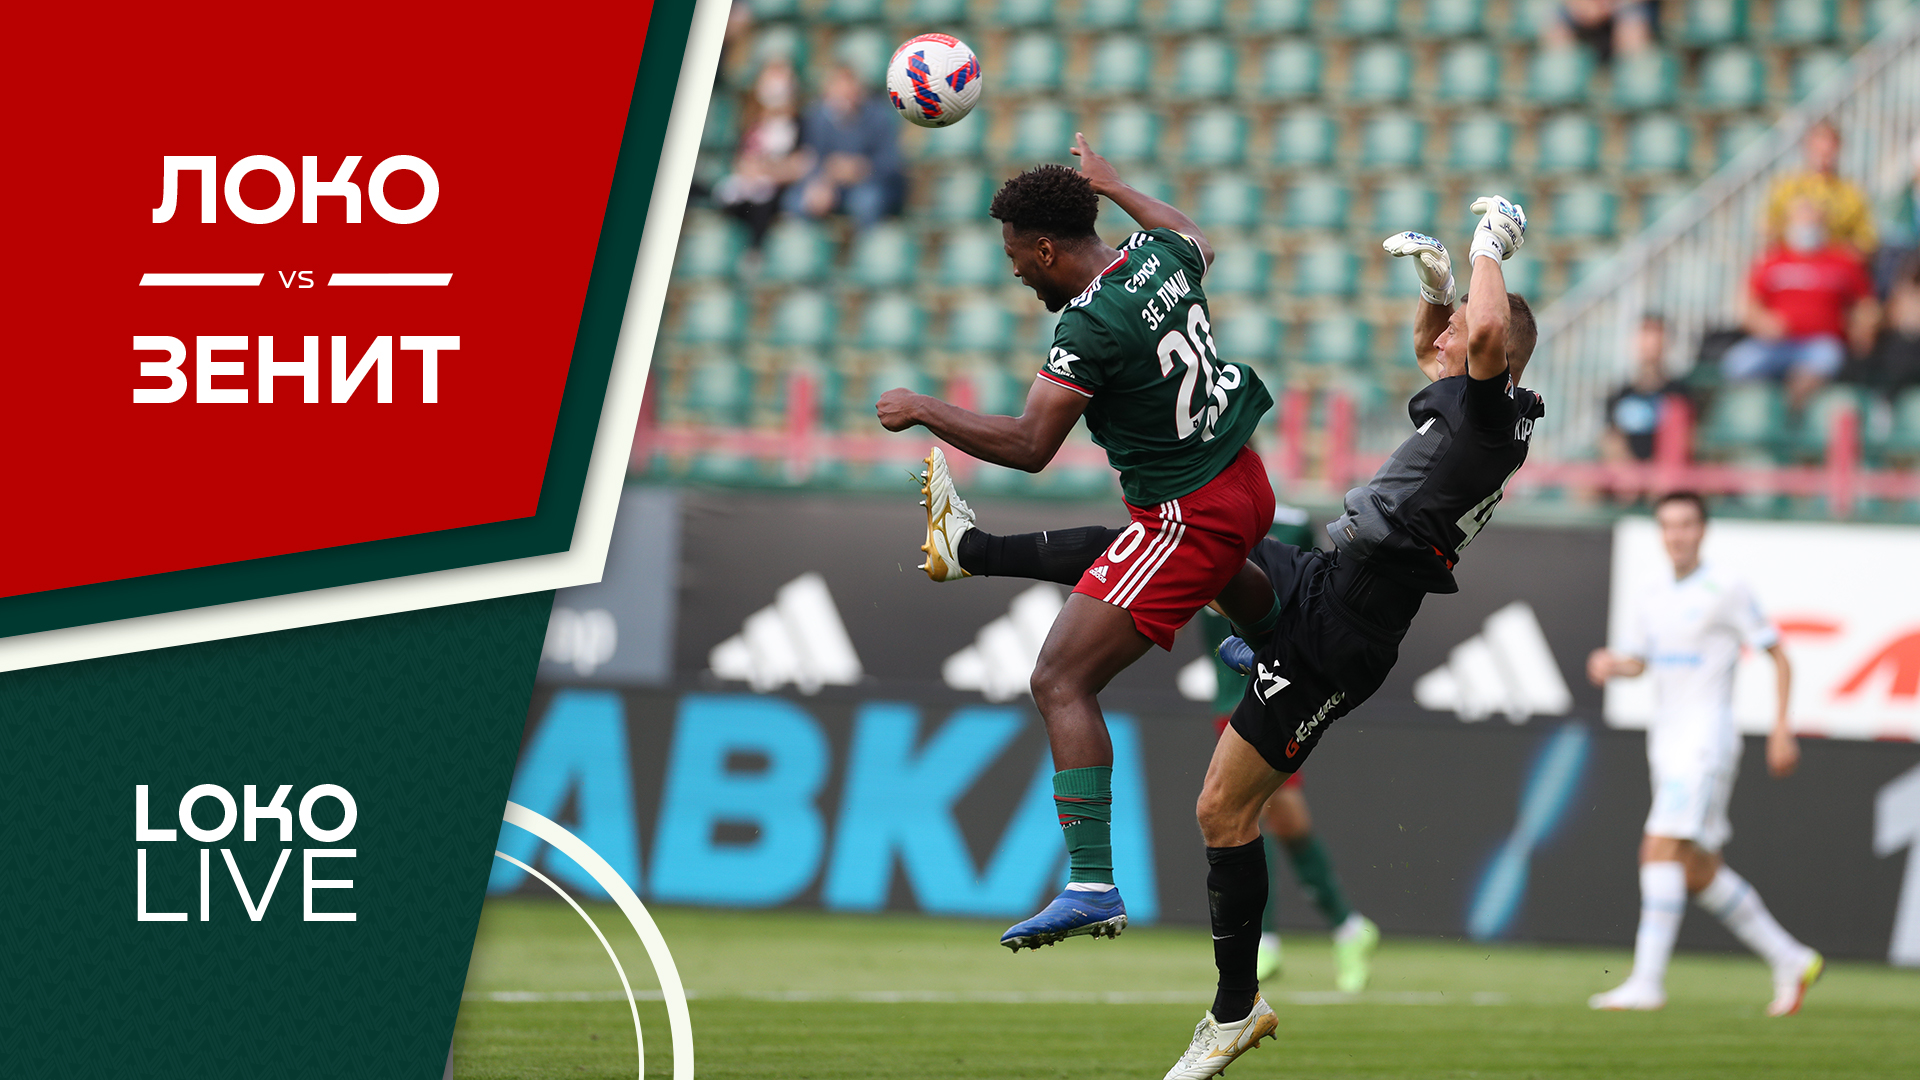 LOKO LIVE // A Draw With Zenit at RZD Arena